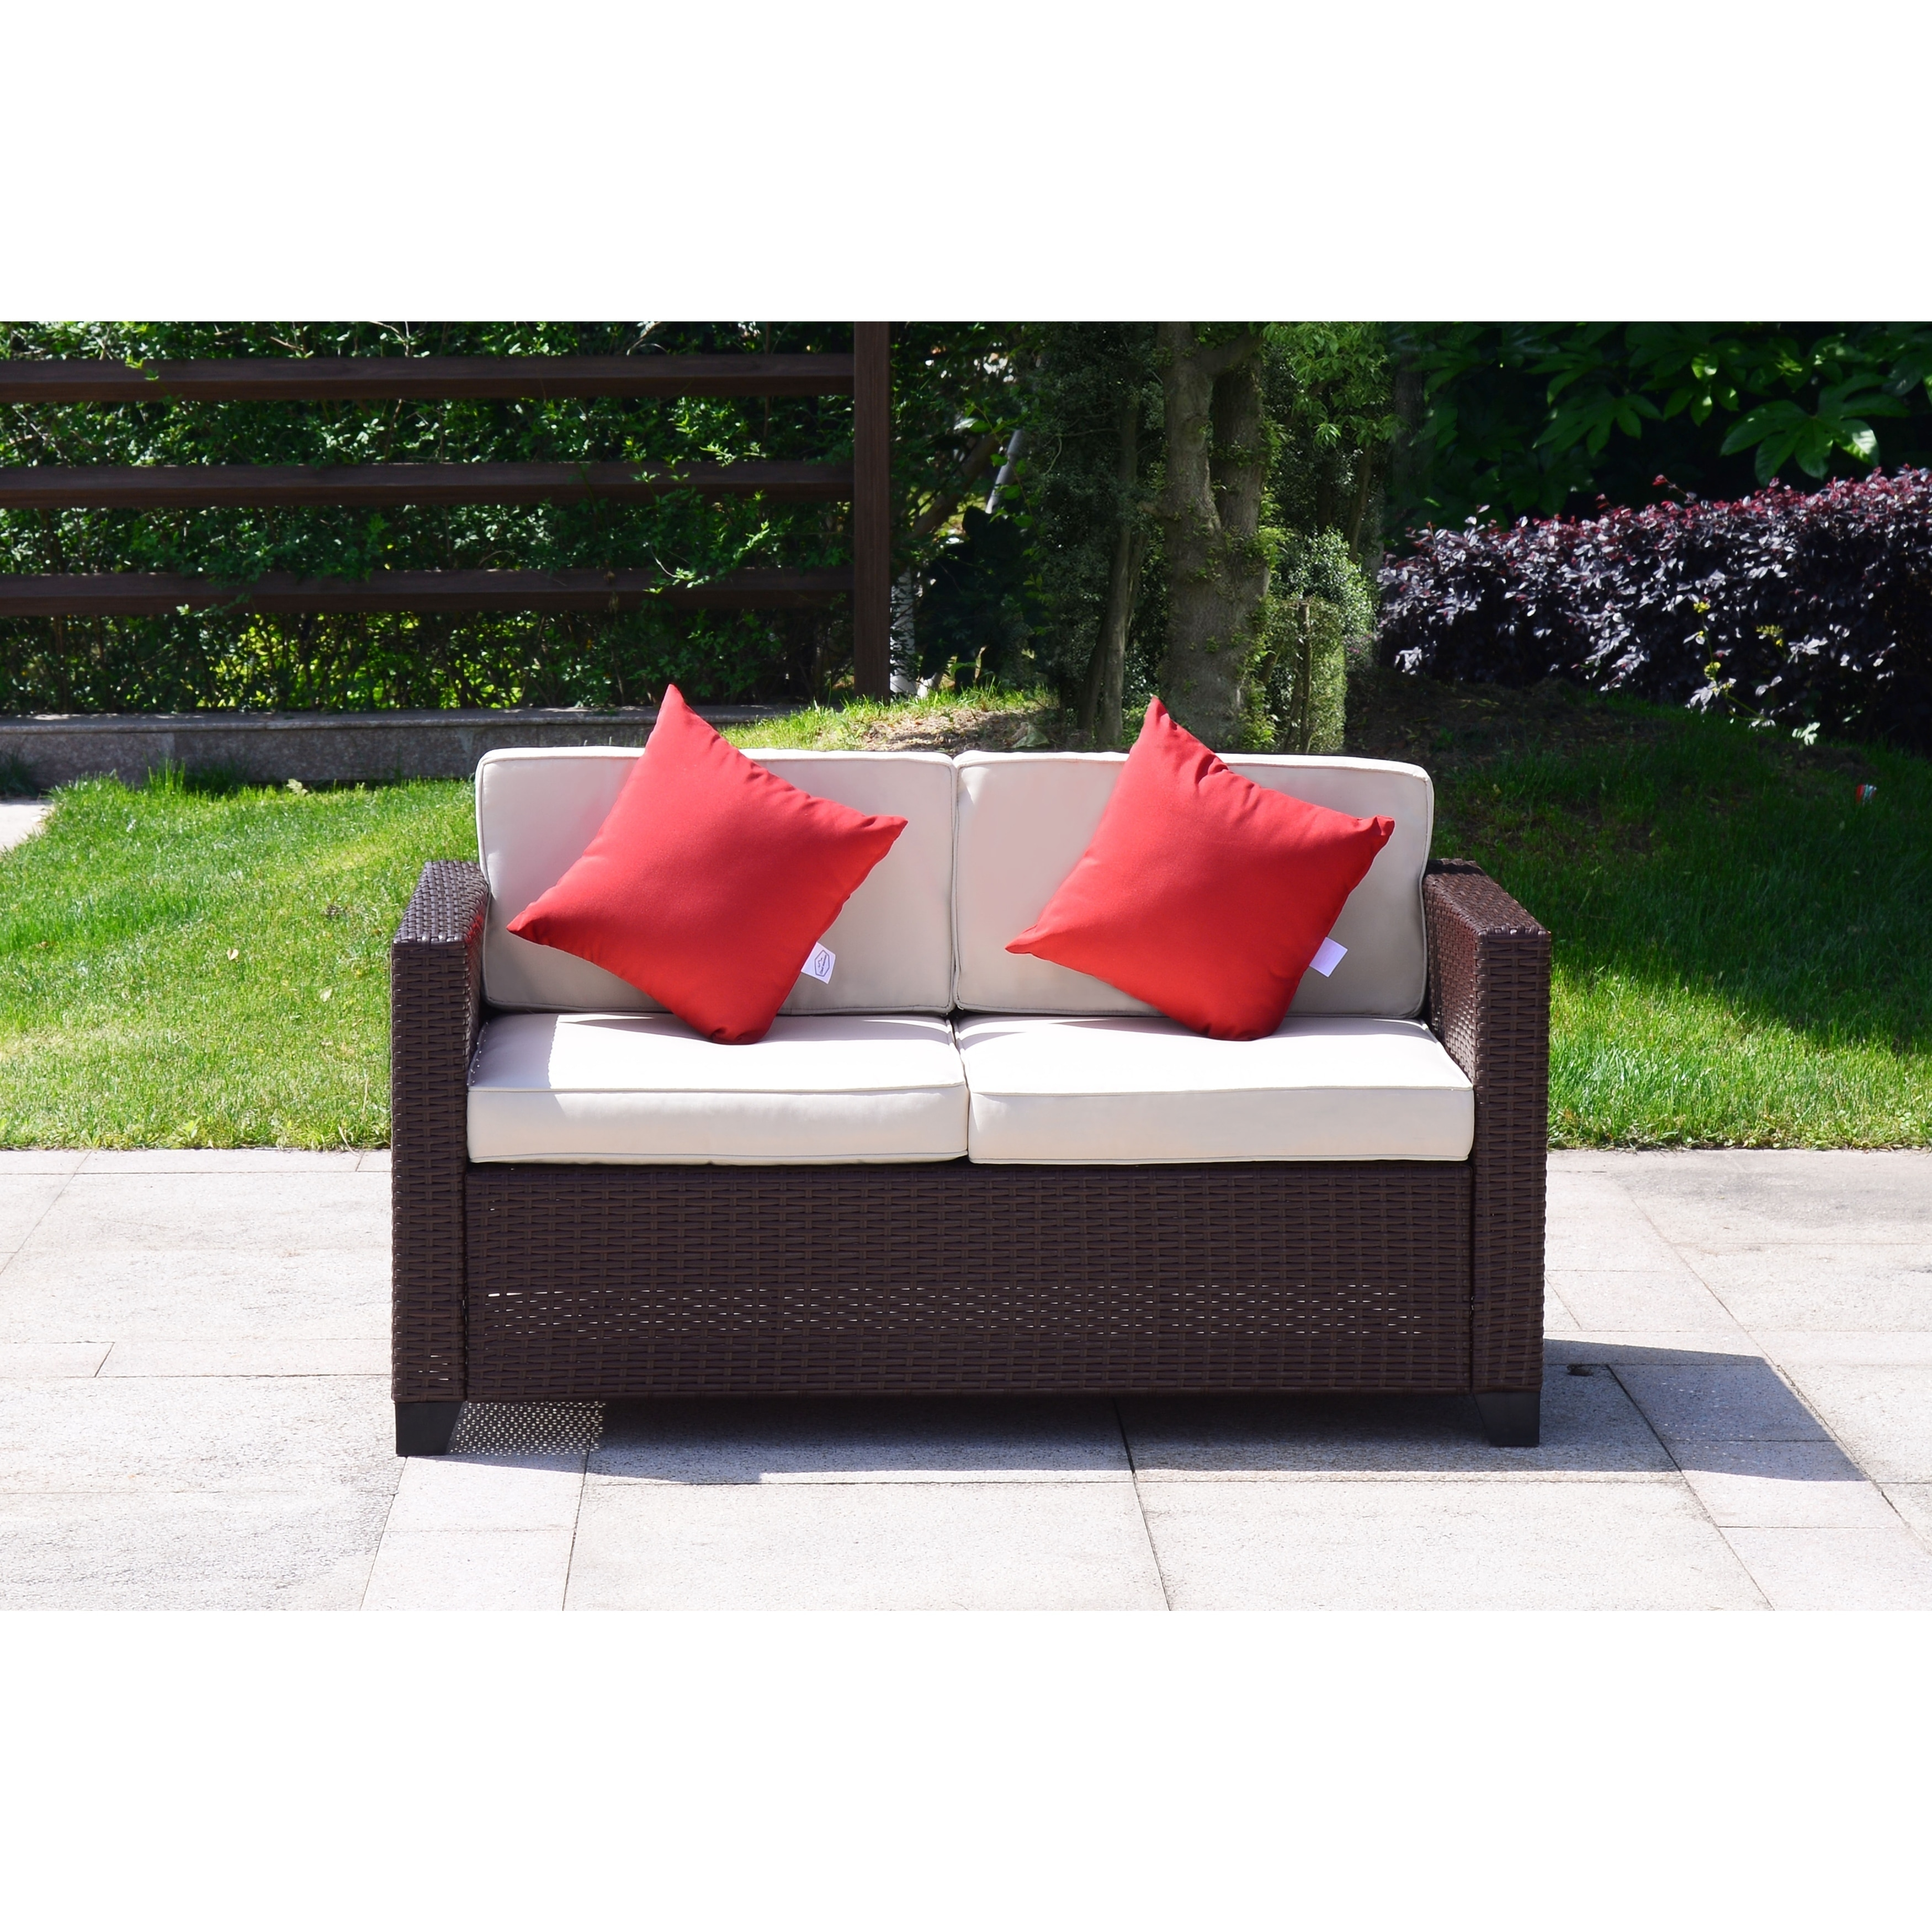 outdoor pdx reviews sunbrella cushions teak cushion studio wayfair with yandell loveseat patio brayden